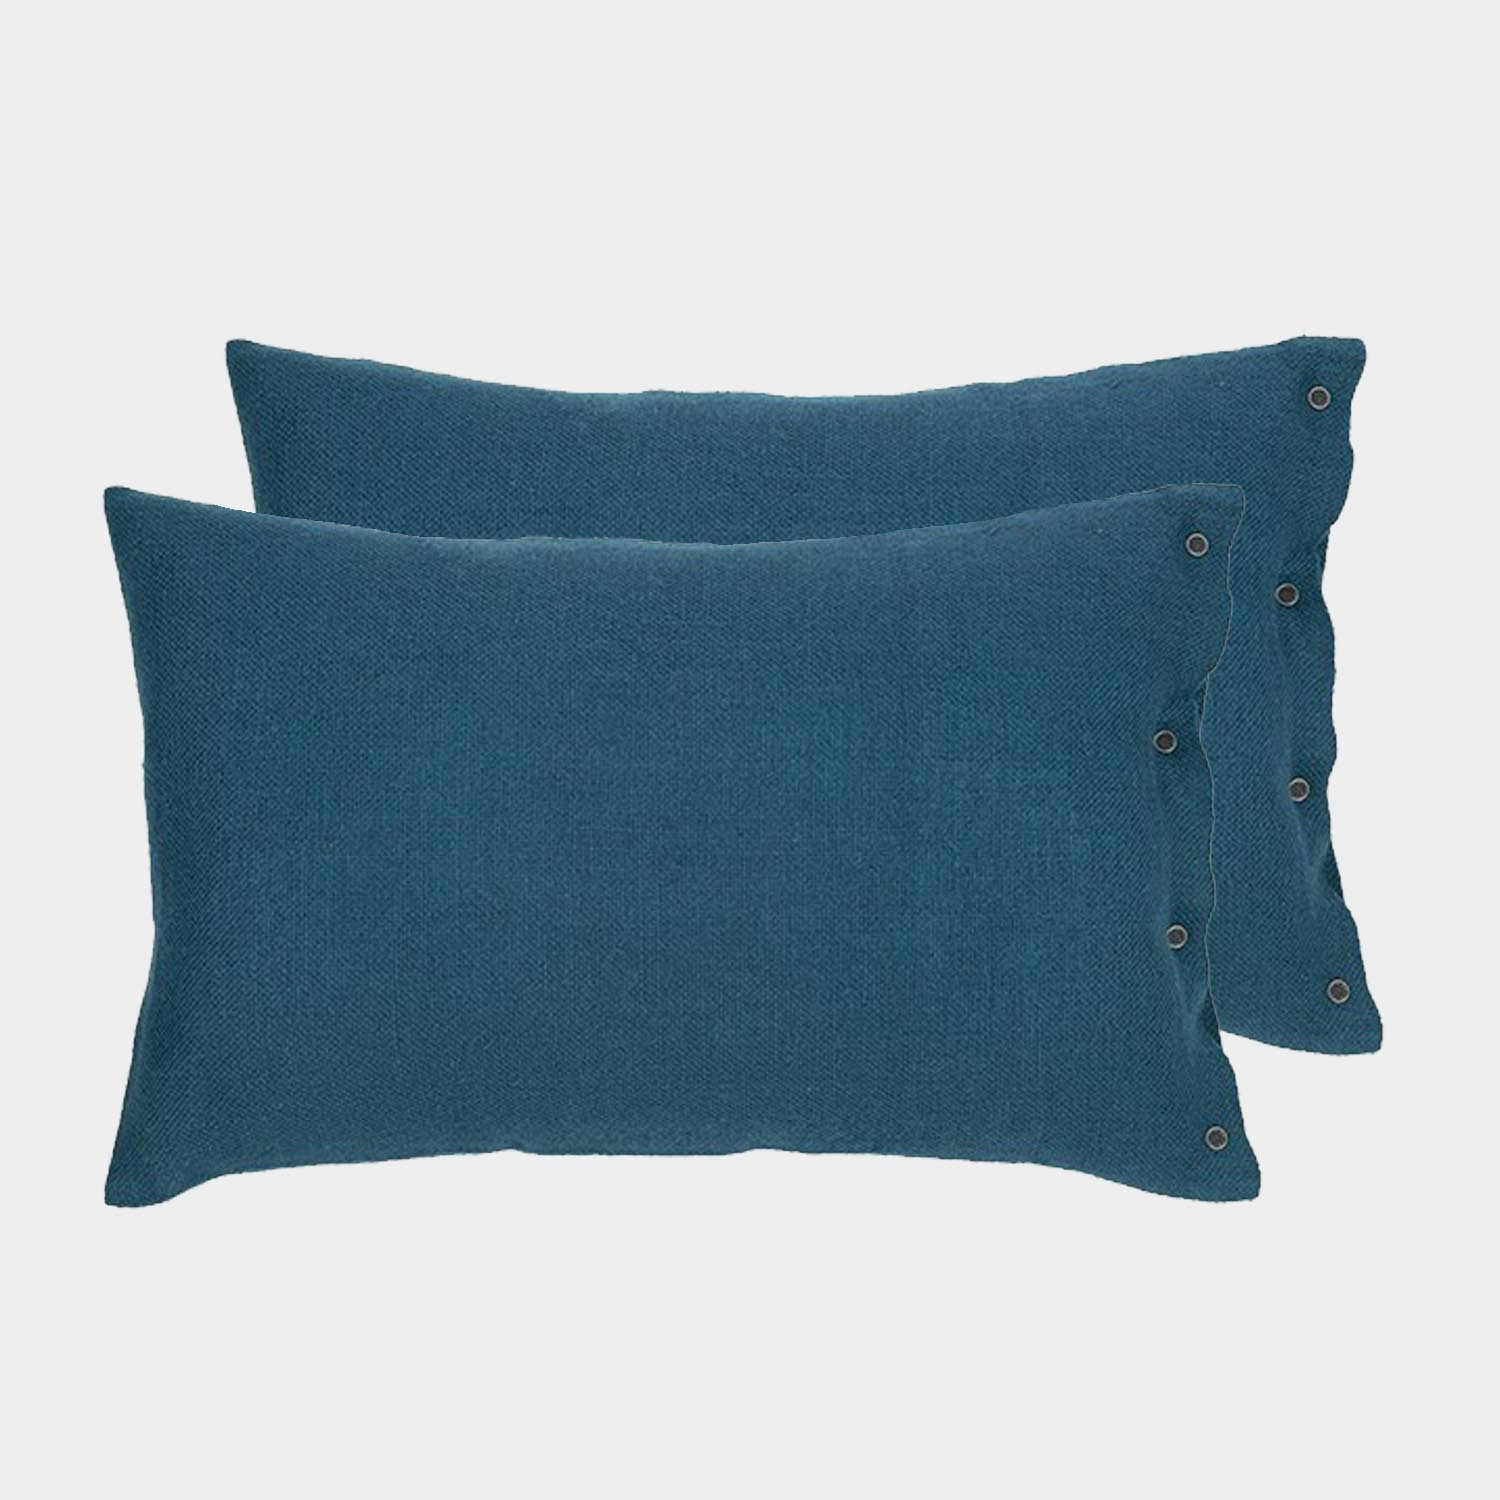 Pair of Rustic Linen Cushion Covers Teal Blue